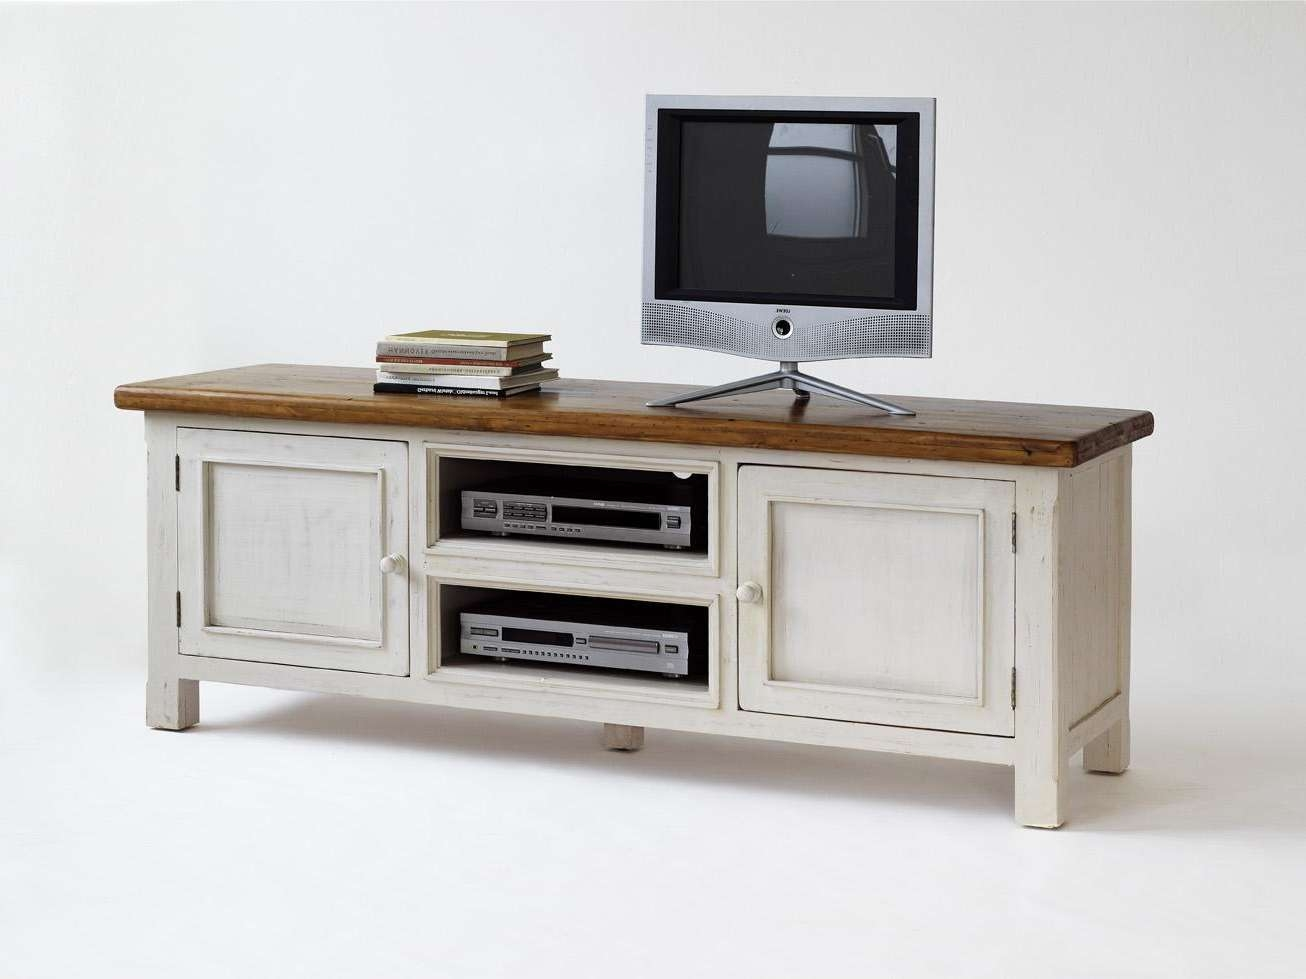 Incredible Decoration White Wood Furniture Nice Design Ideas Throughout White Wooden Tv Stands (View 5 of 20)